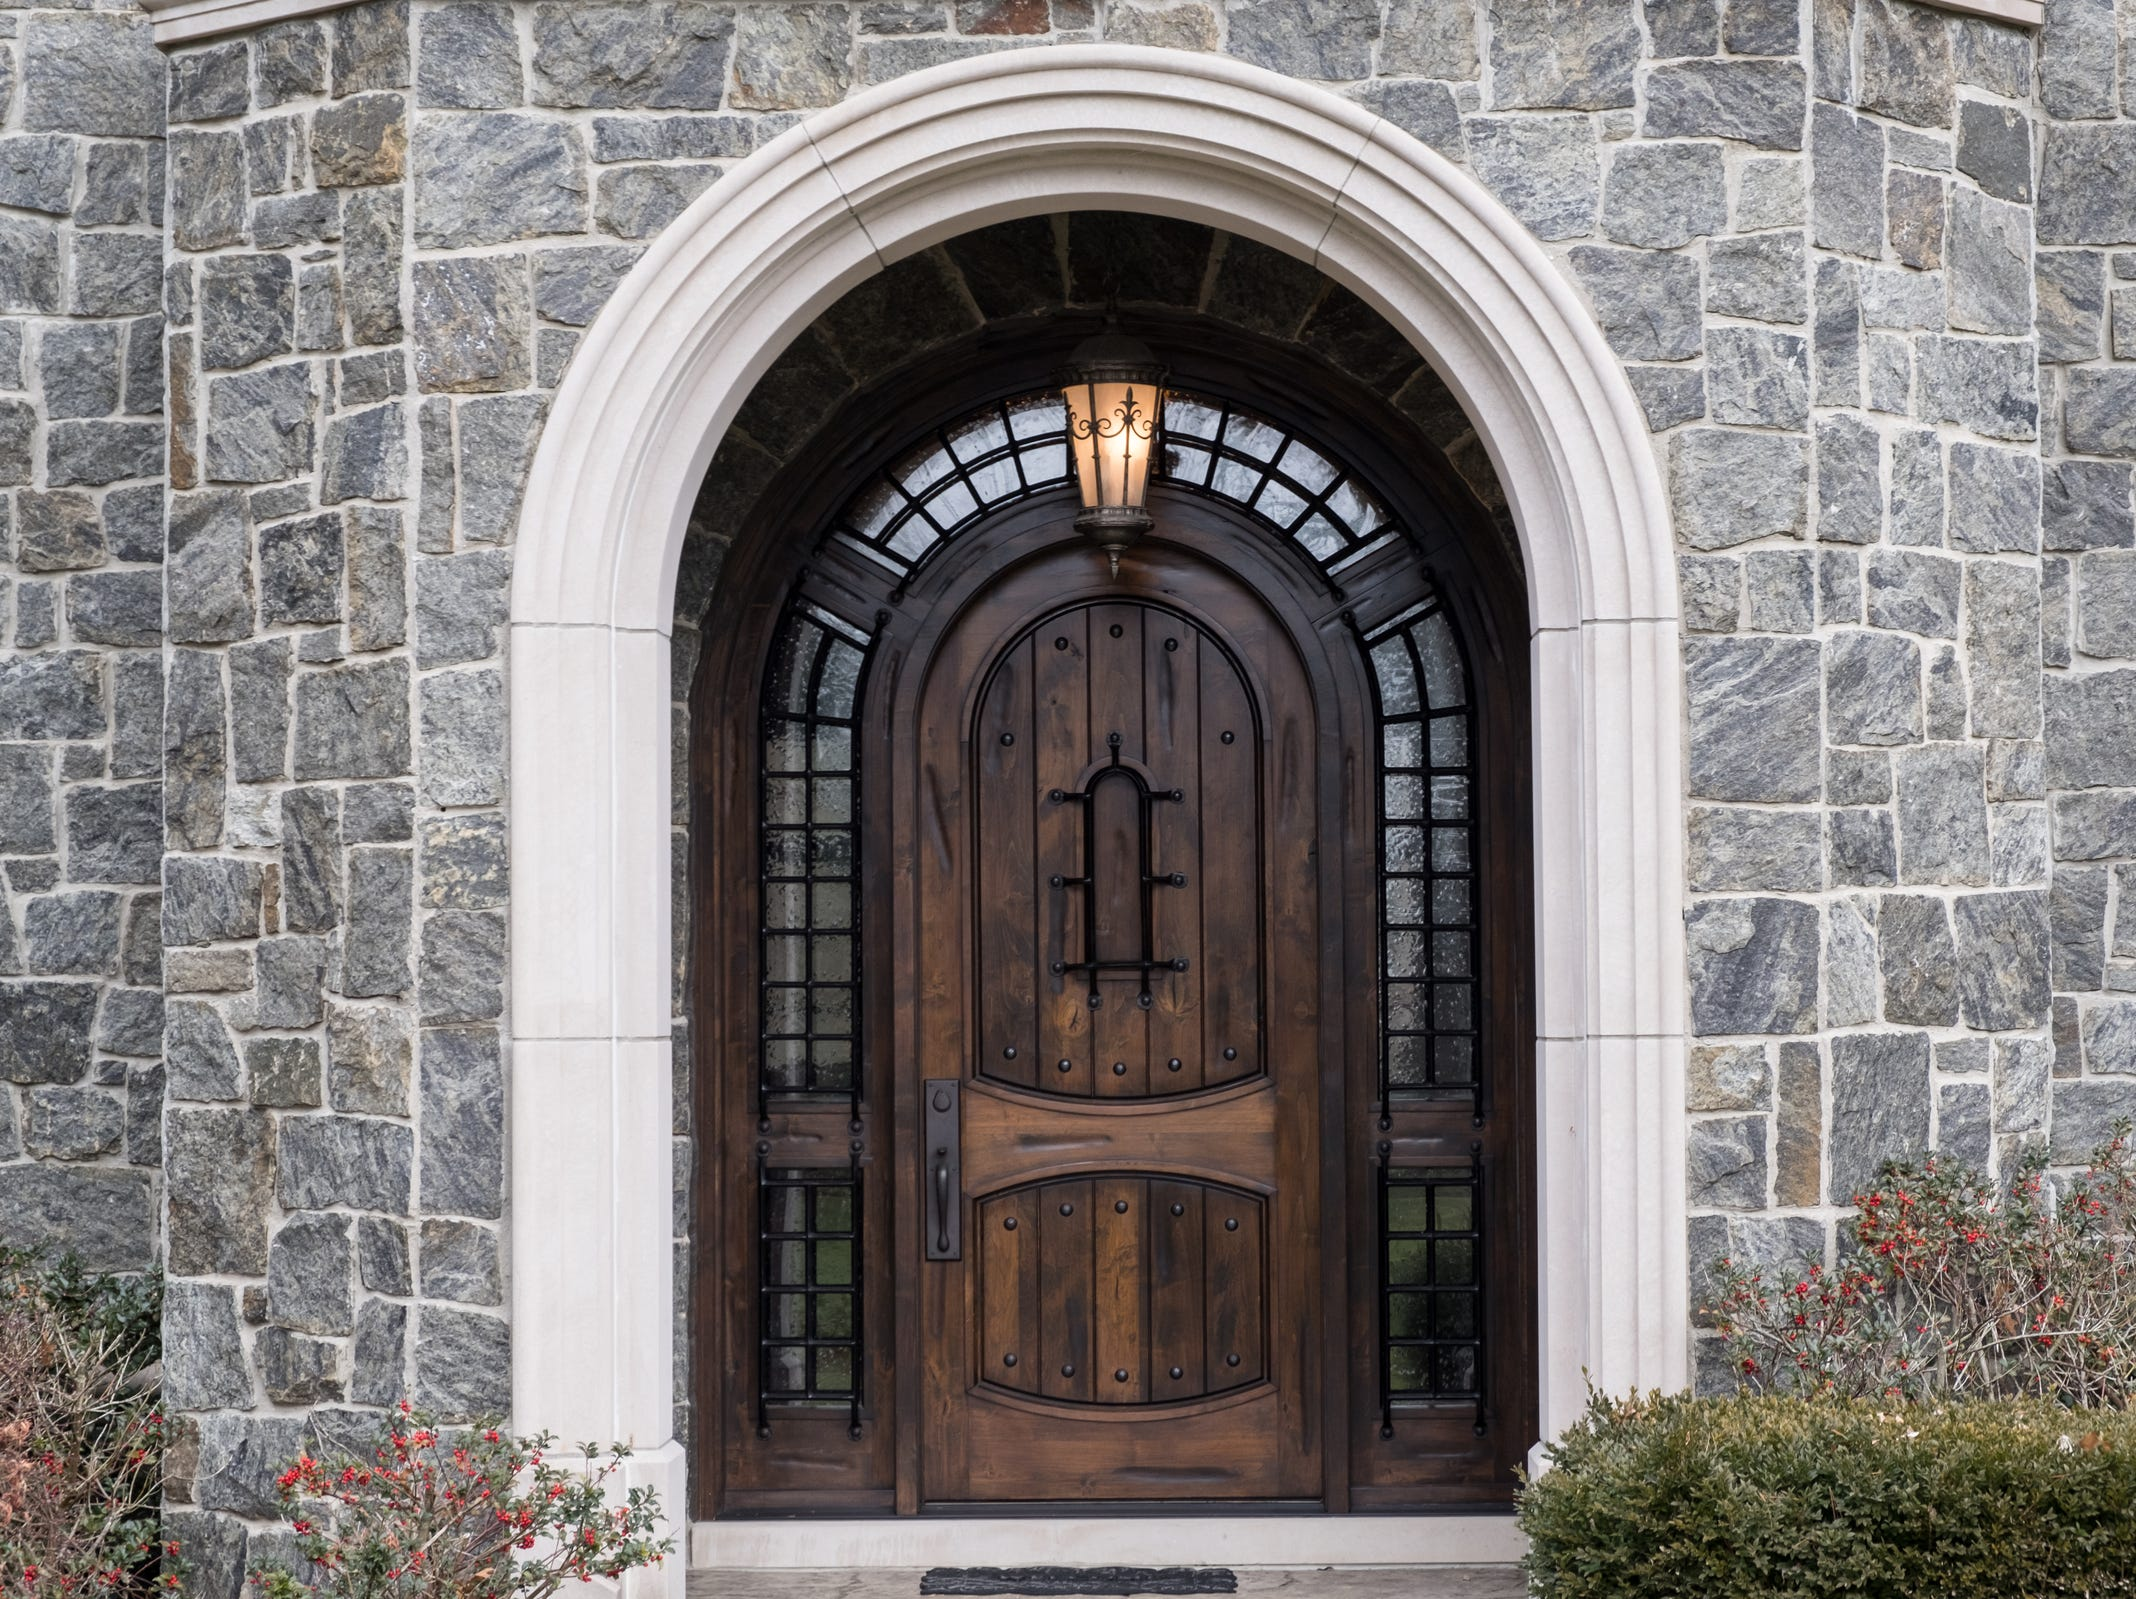 A large wooden front door at the entry to the 5,000 sq. ft. 3-bedroom home in Washington Township envisioned after the Biltmore Estate.